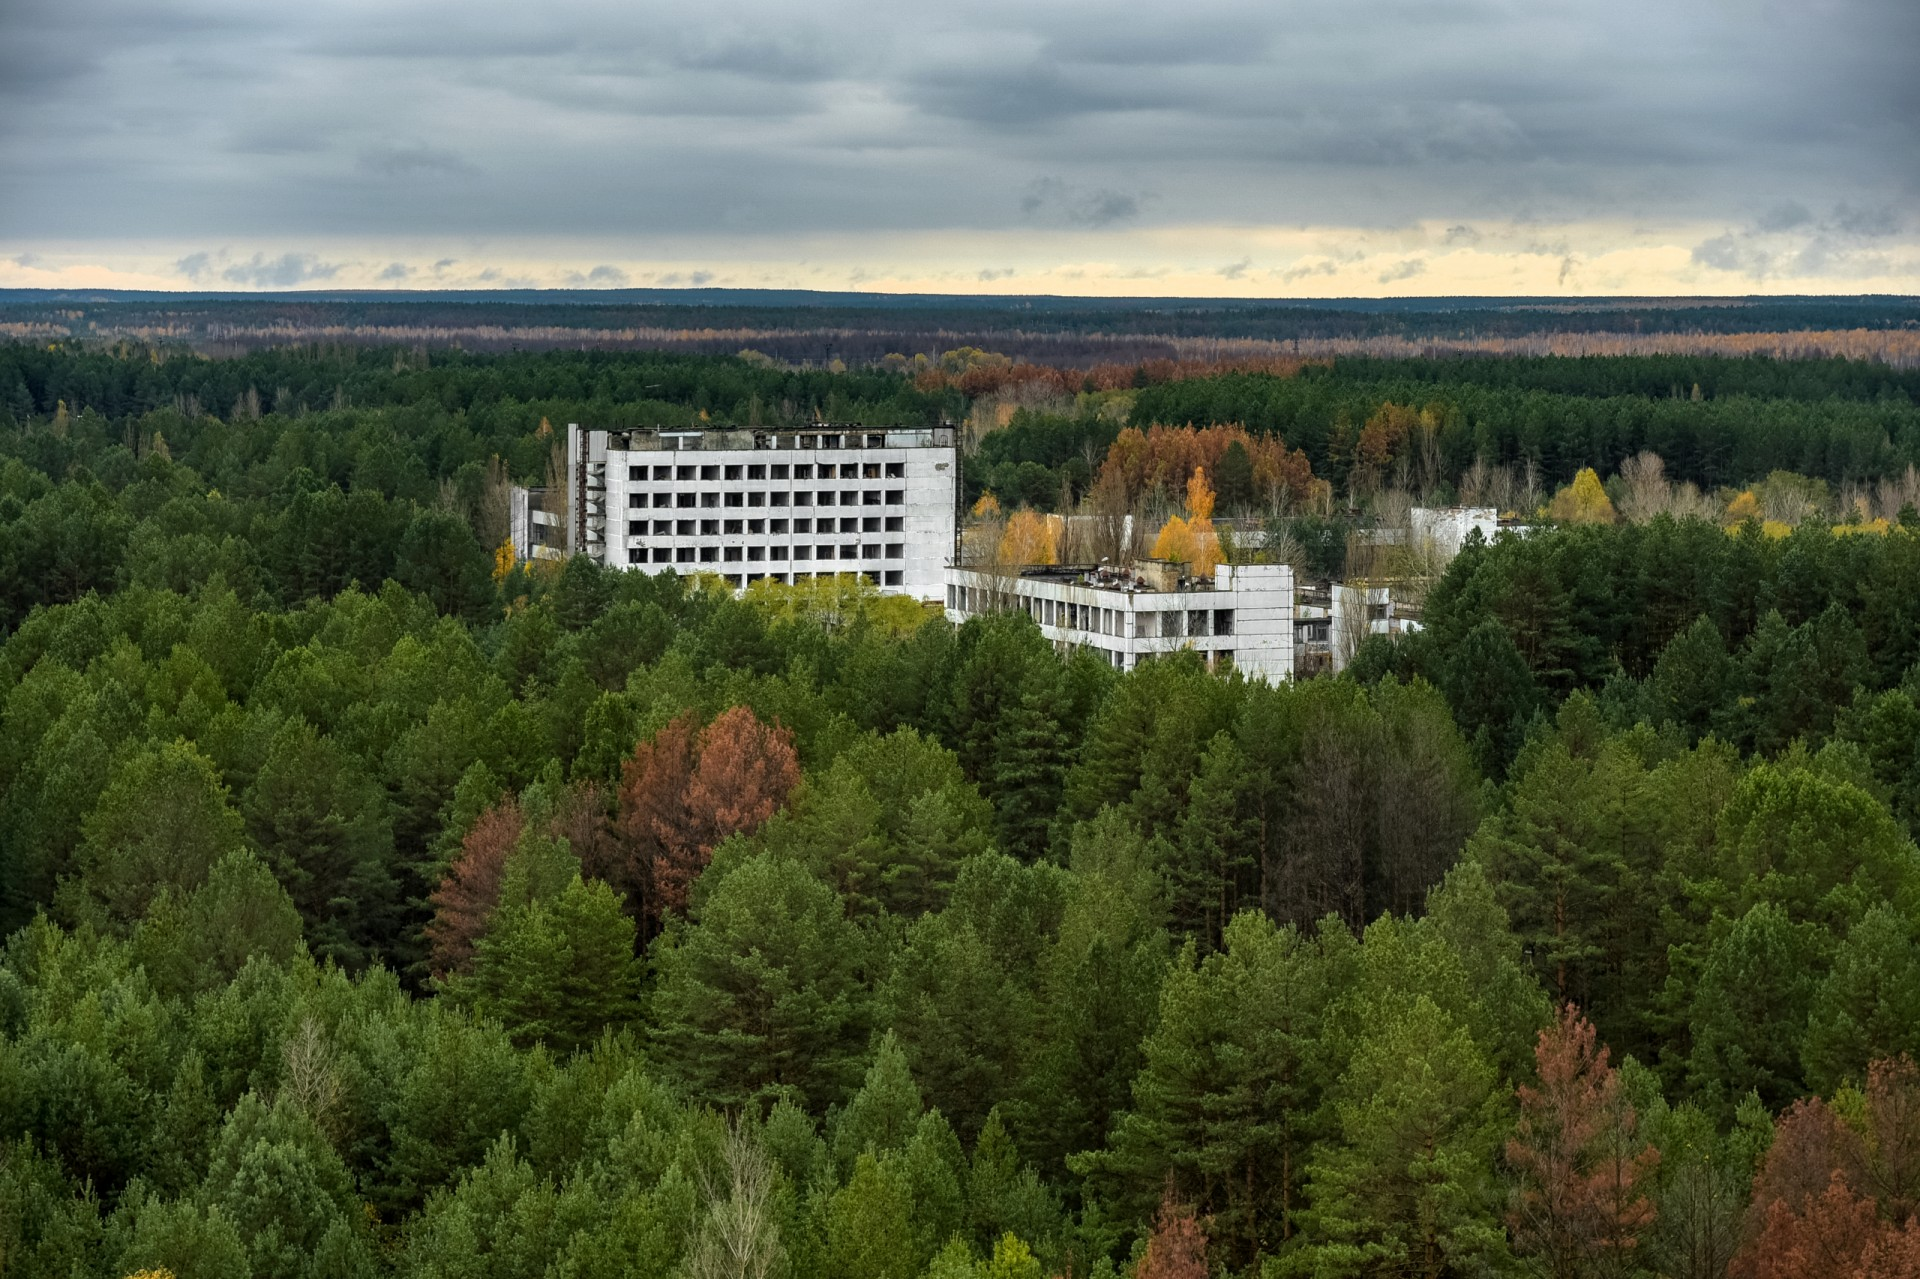 Forests have reclaimed the 'abandoned city' of Pipyat near Chernobyl. Photo by Jorge Franganillo via Flickr